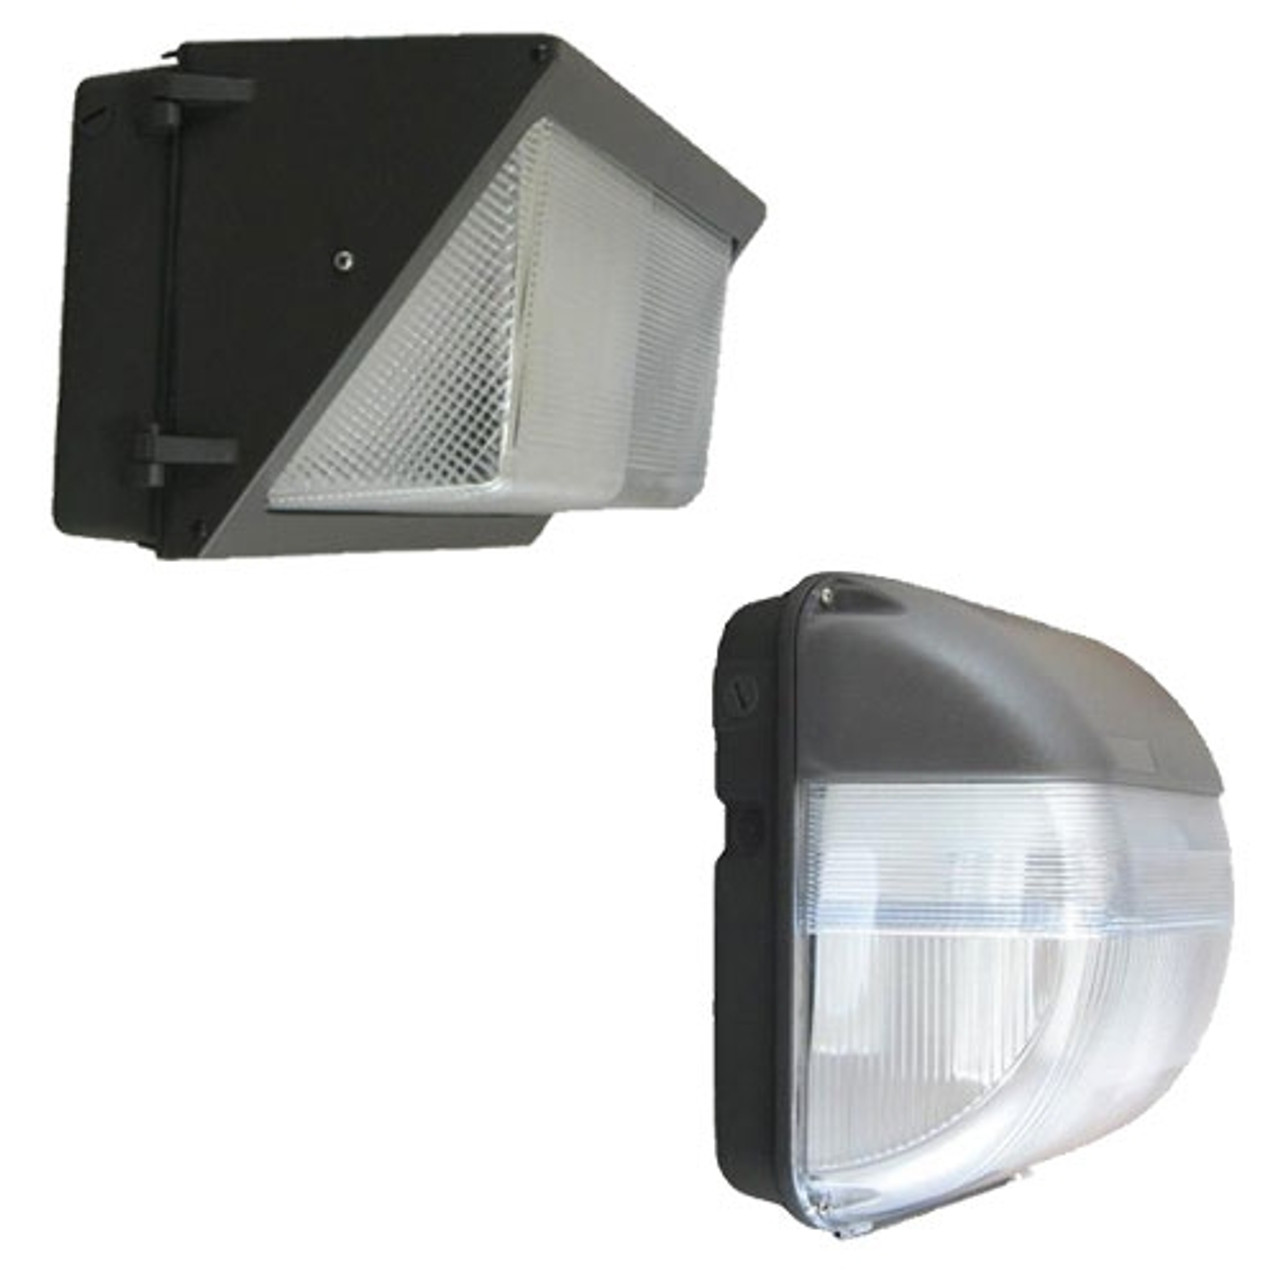 Fluorescent Outdoor Lighting: ... Fluorescent Outdoor Lights ...,Lighting